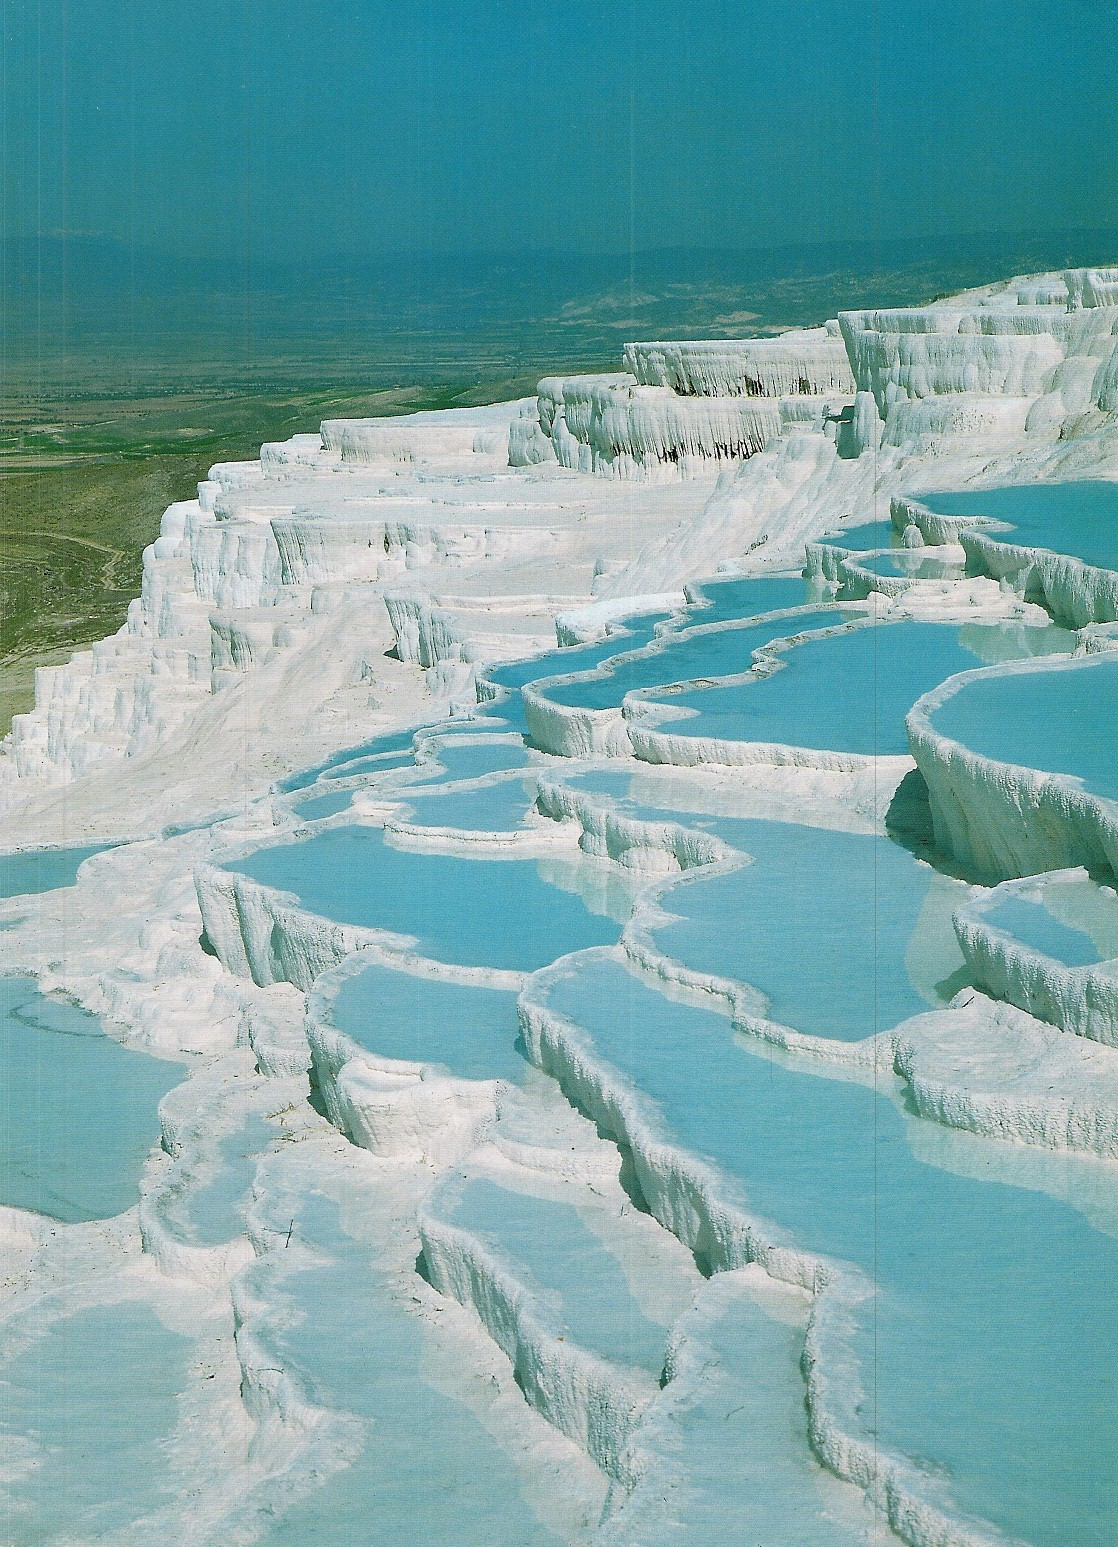 Turquia Piscinas Naturales Pamukkale By Photos